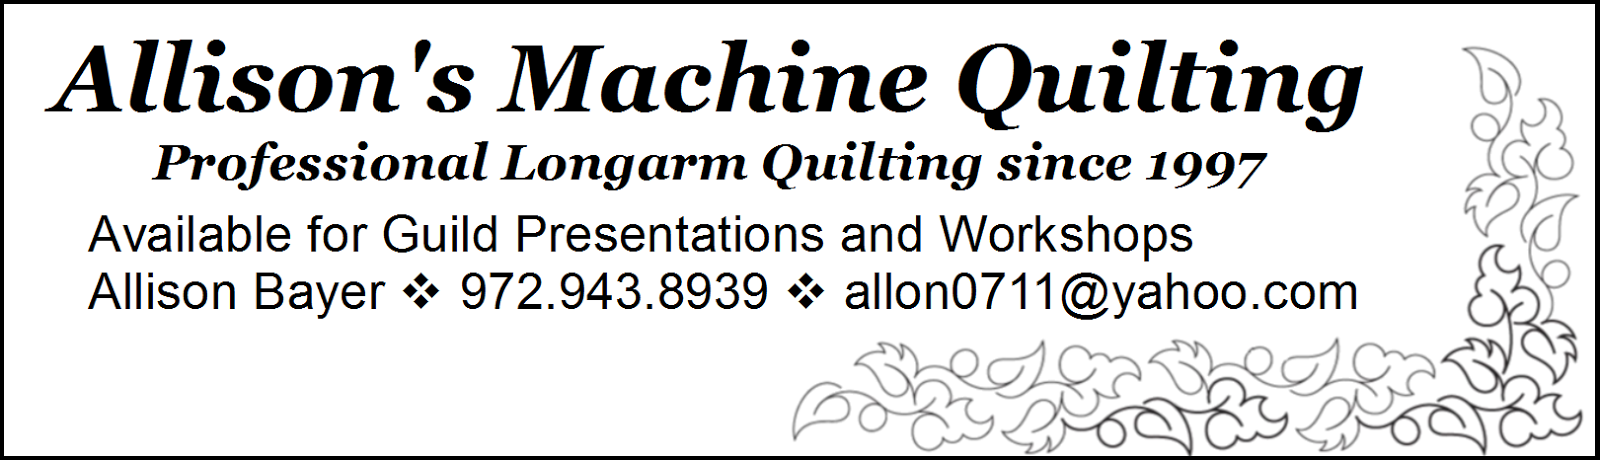 Allison's Machine Quilting